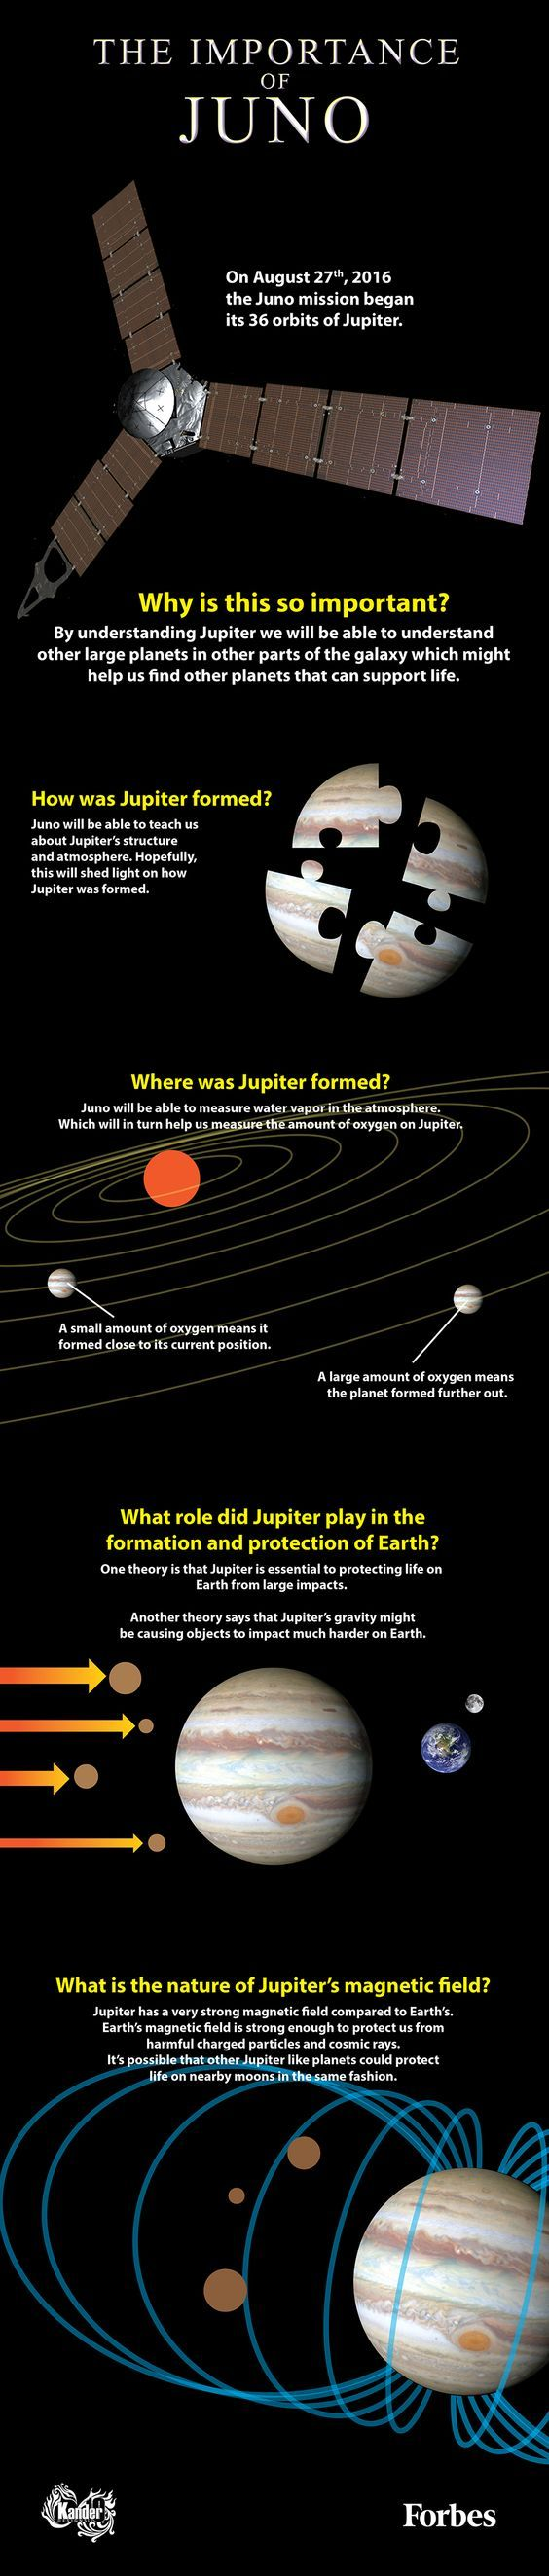 Find This Pin And More On Ws Ref (science): Astronomy